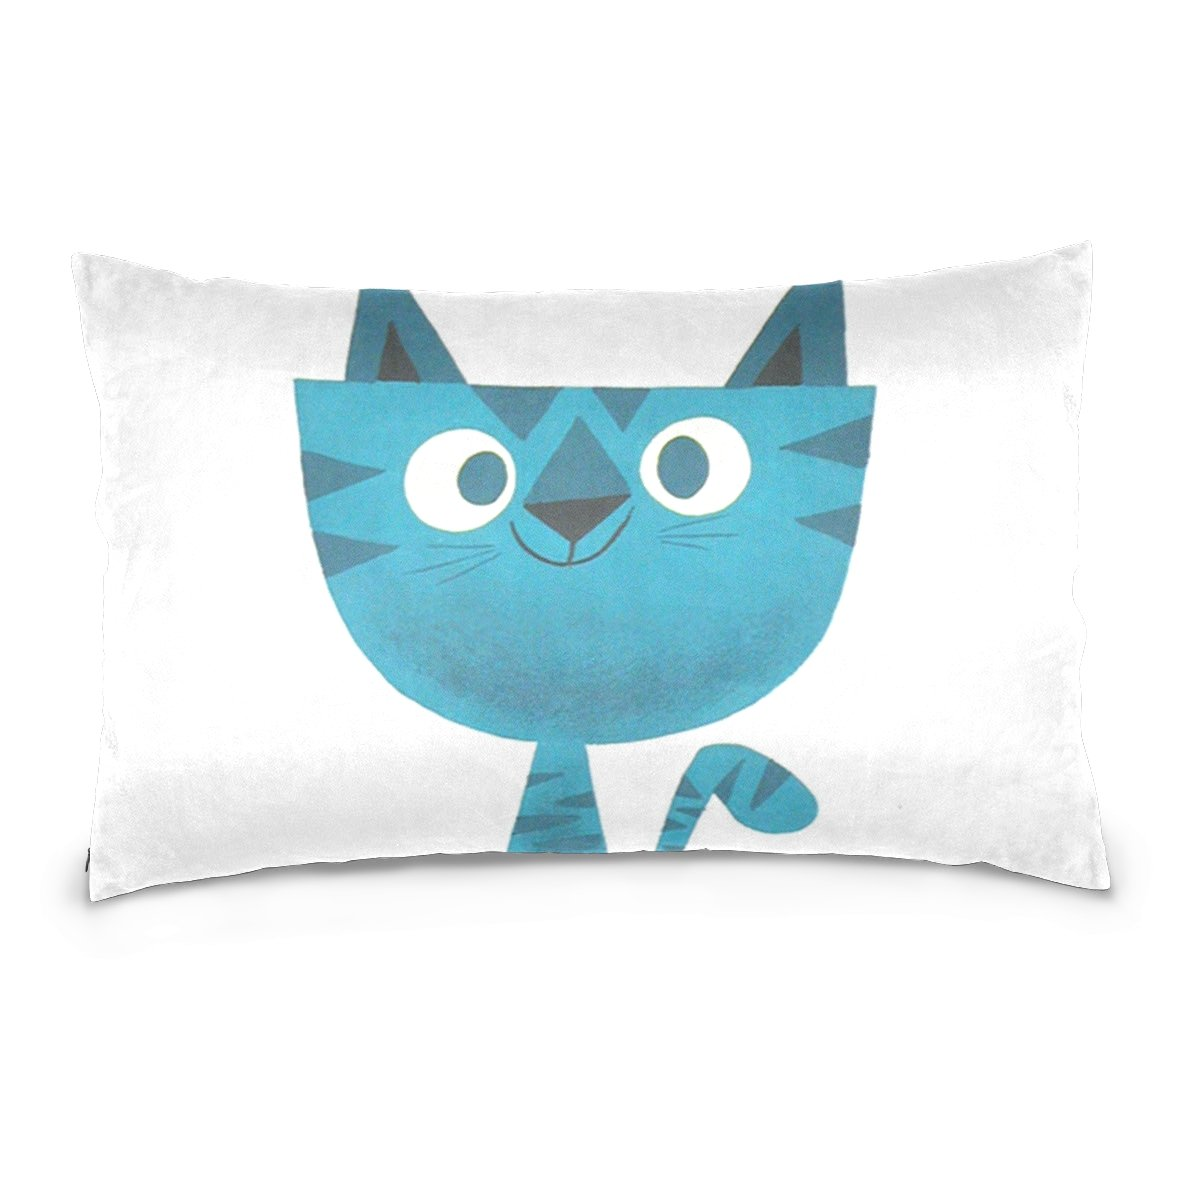 THENAHOME Pillow Covers Pillow Protectors Bed Bug Dust Mite Resistant Standard Pillow Cases Cotton Sateen Allergy Proof Soft Quality Covers with Animal Blue Cat for Bedding